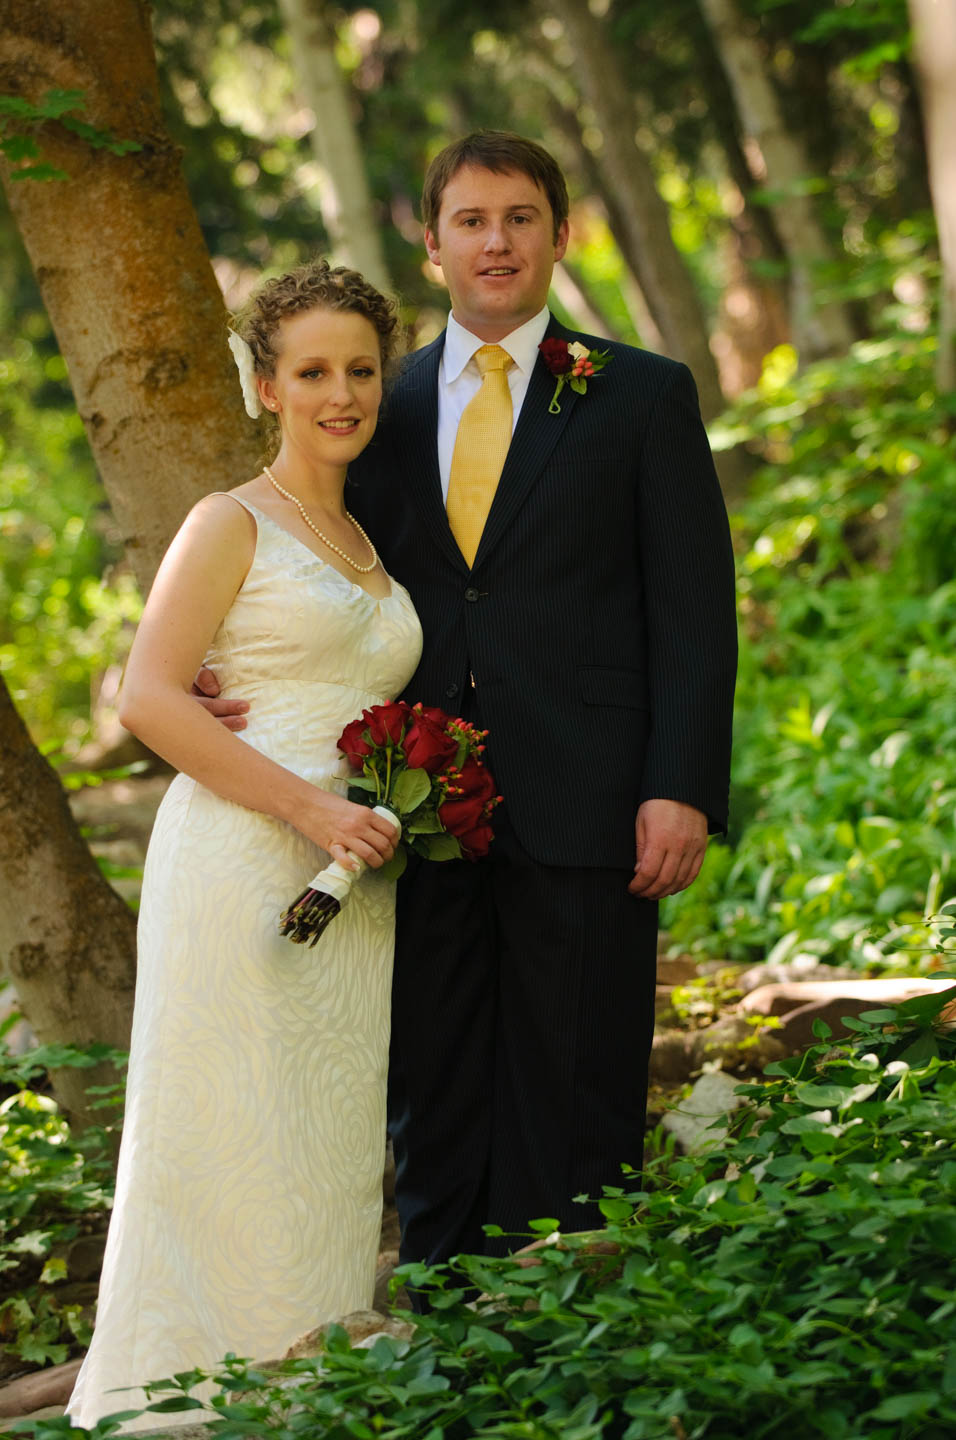 Formal portrait of the bride and groom